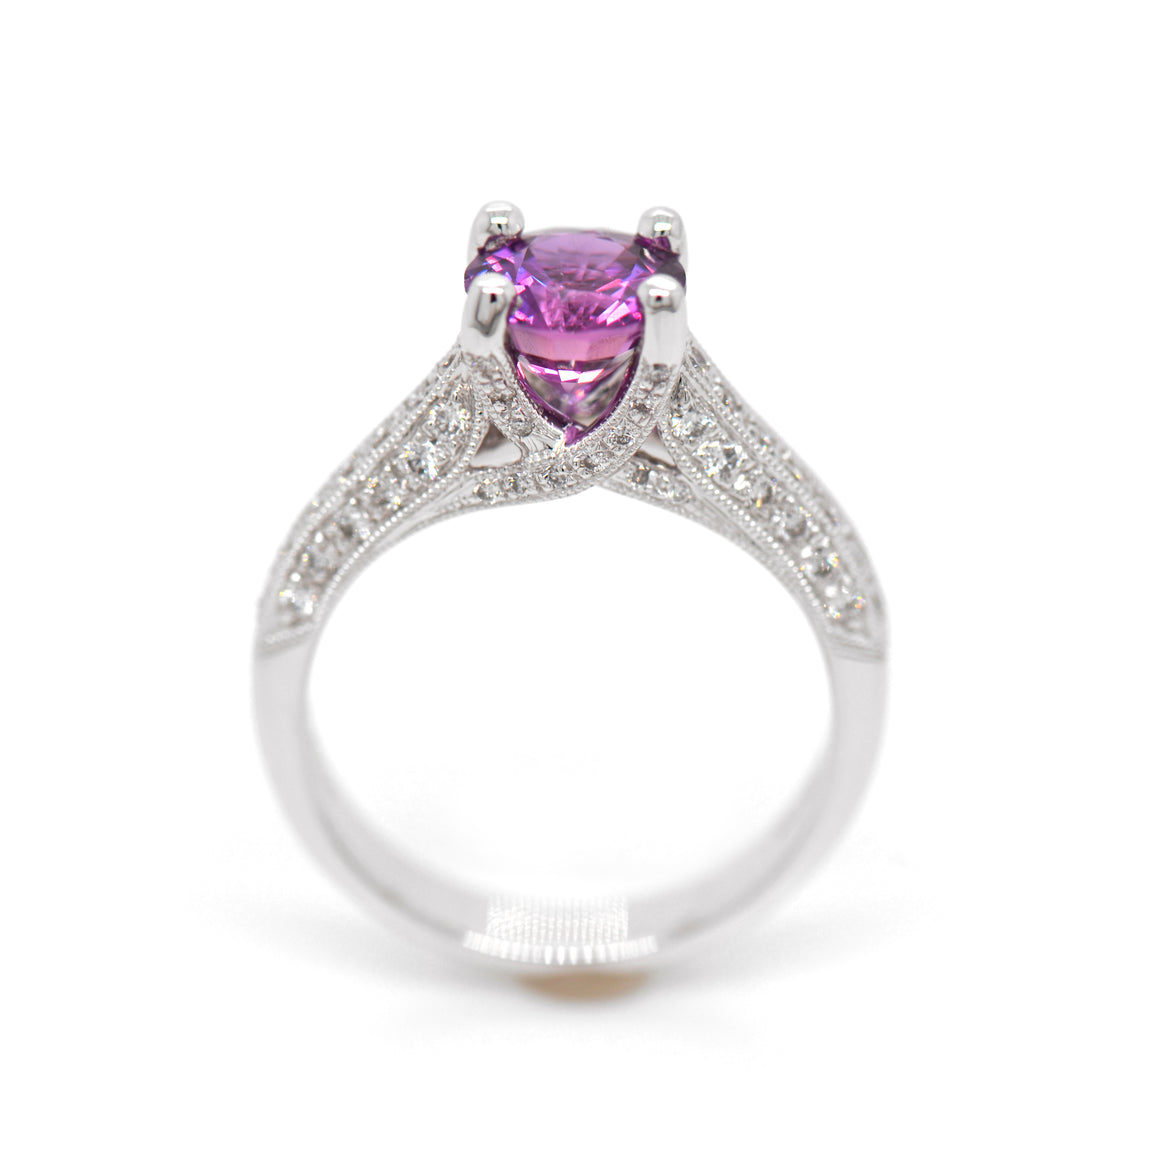 18KW Purple Sapphire And Diamond Ring in a 4-prong setting judith arnell jewelers pdx